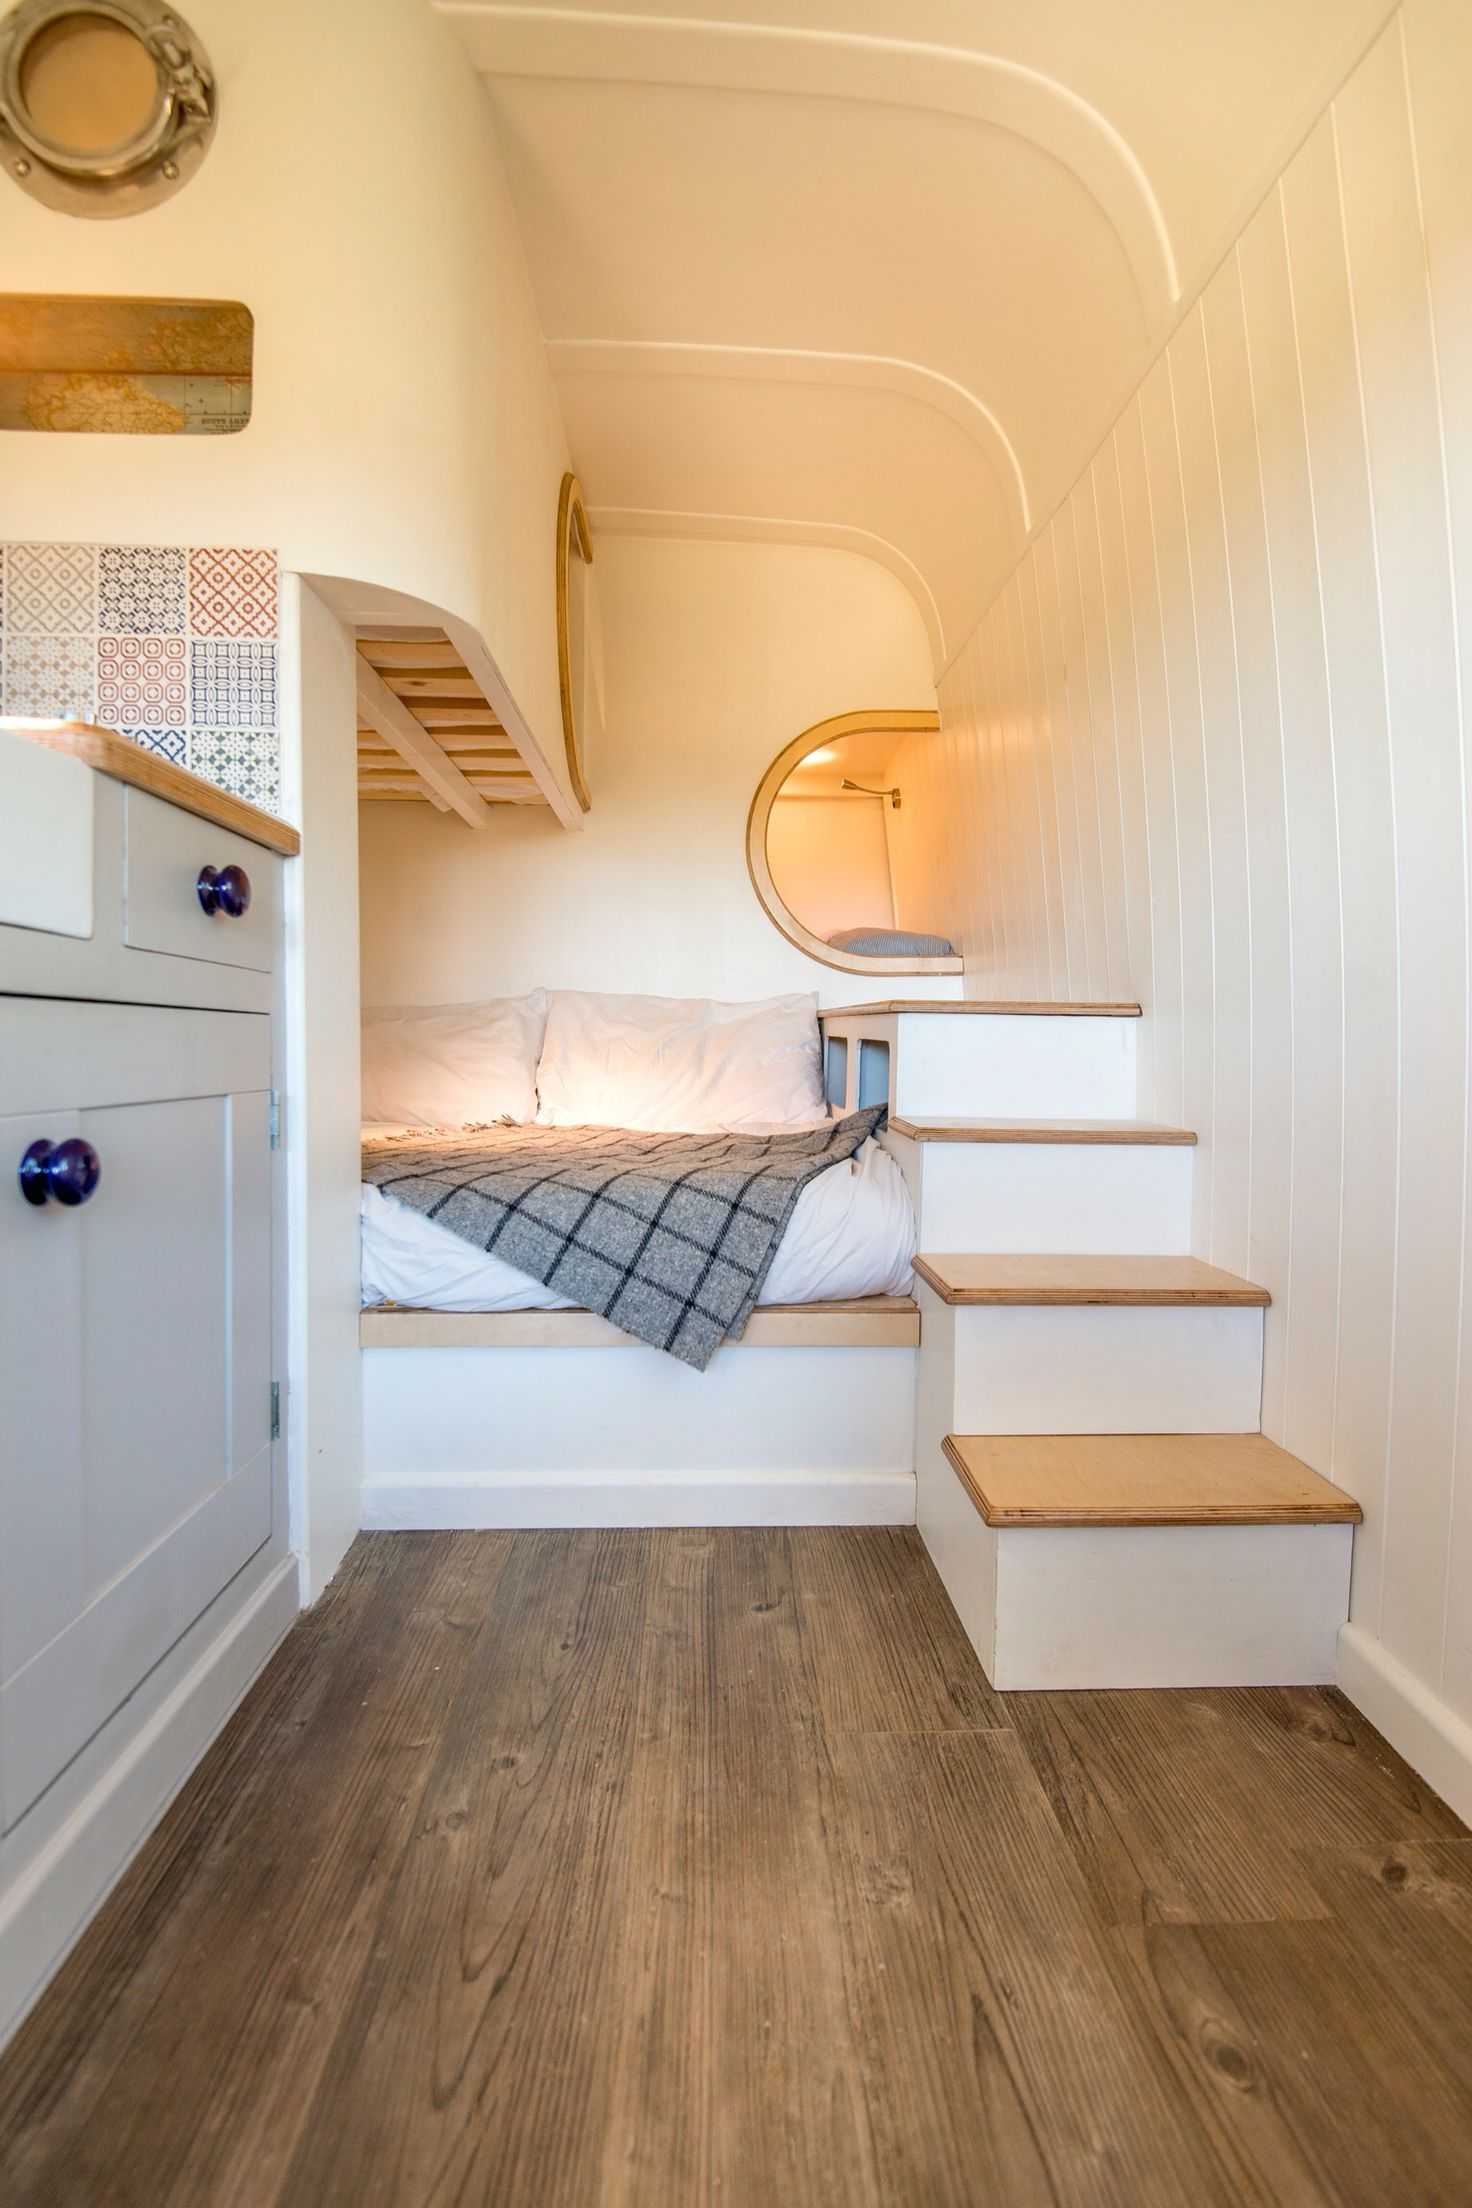 Interior Of Cool Camper Van Conversion At Pinteres